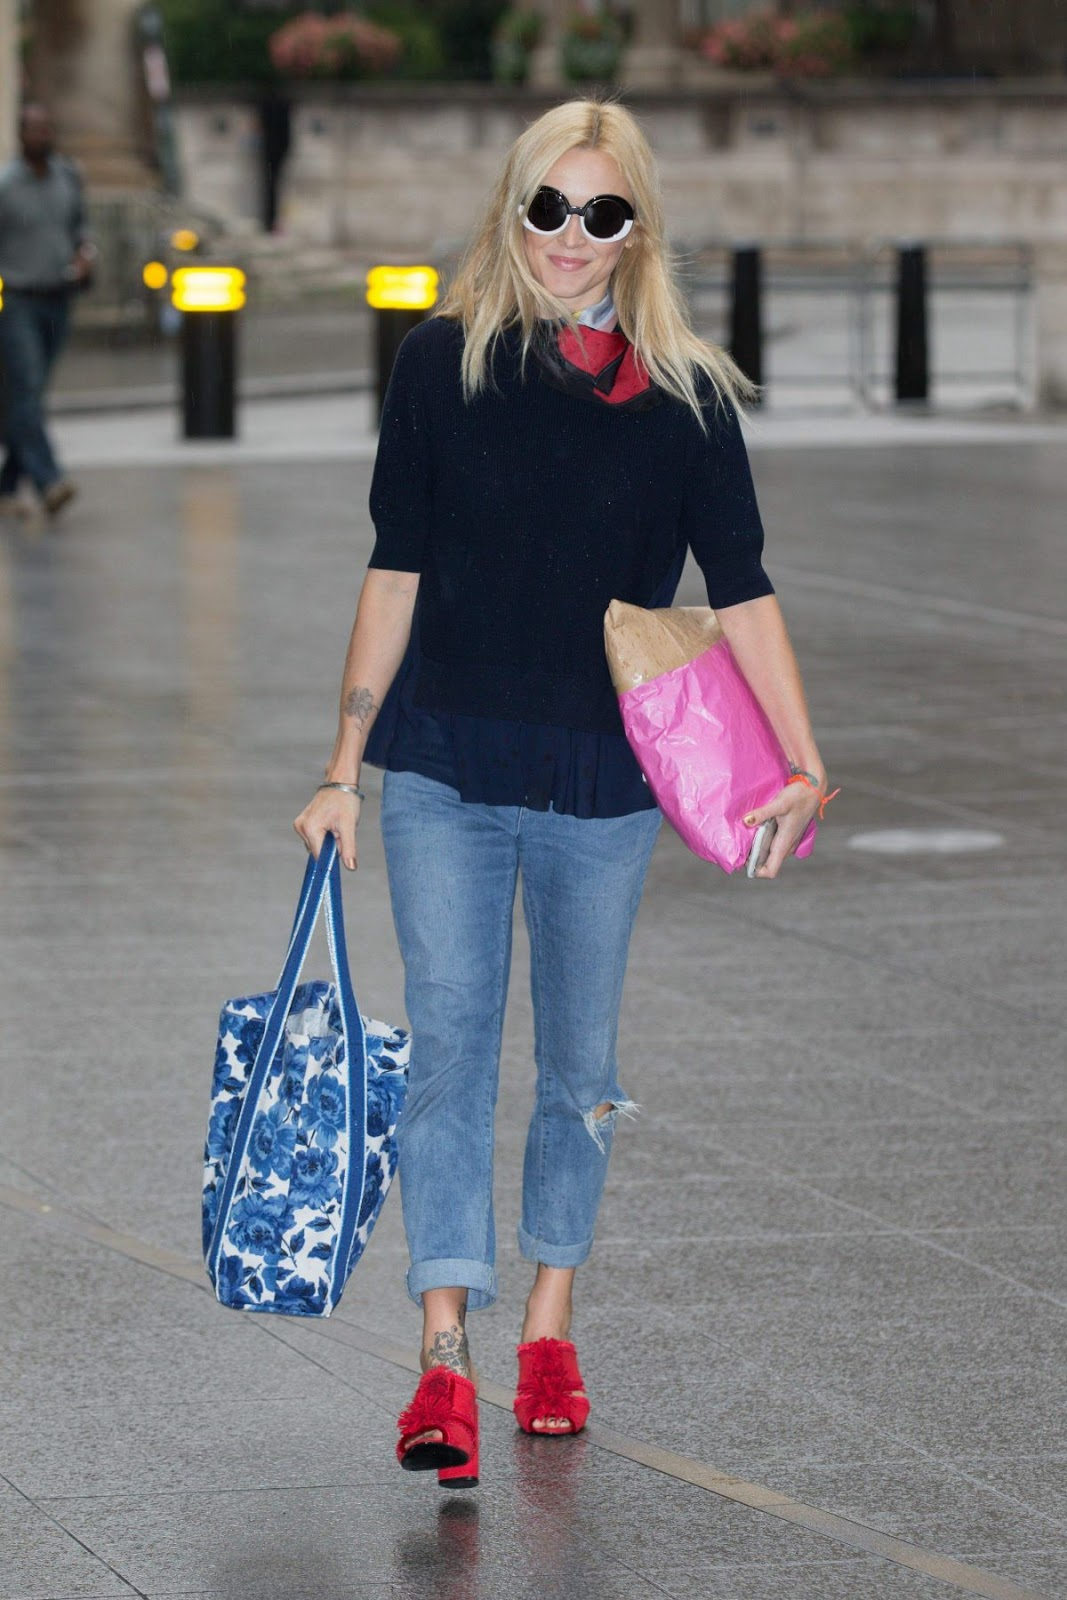 Fearne Cotton Arrives At BBC Radio 2 Studios In London